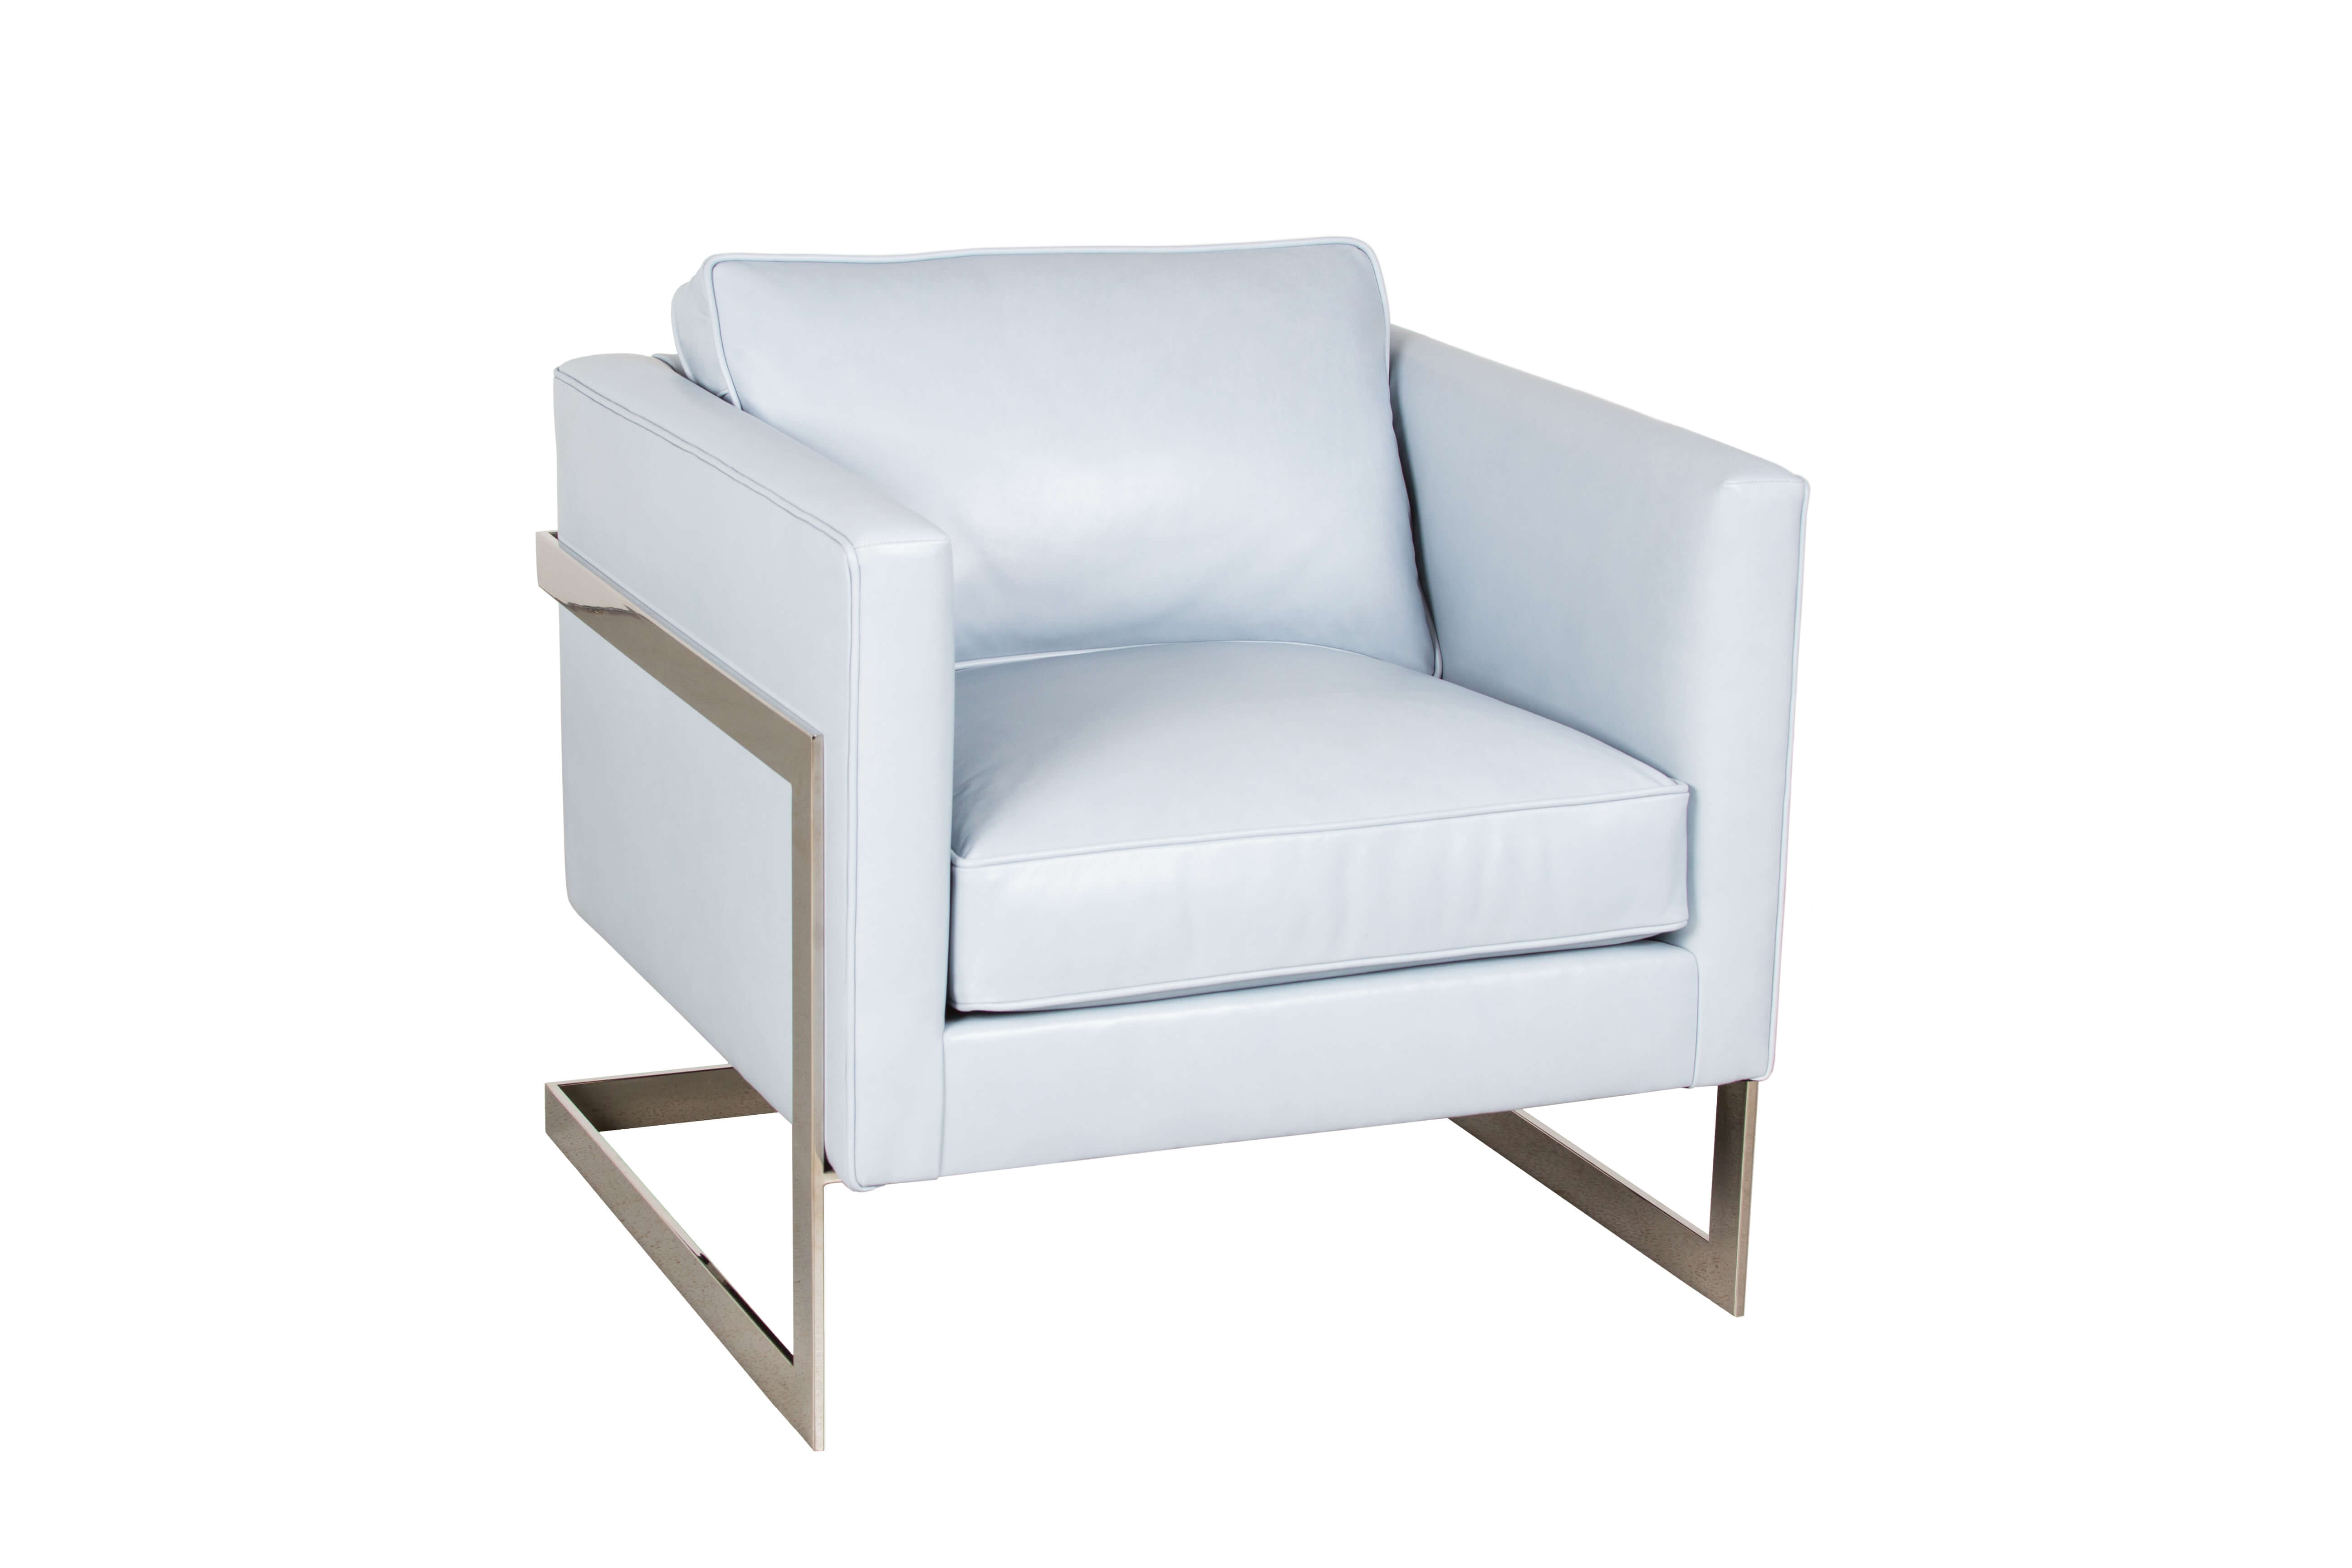 ABOUT THIS CHAIR